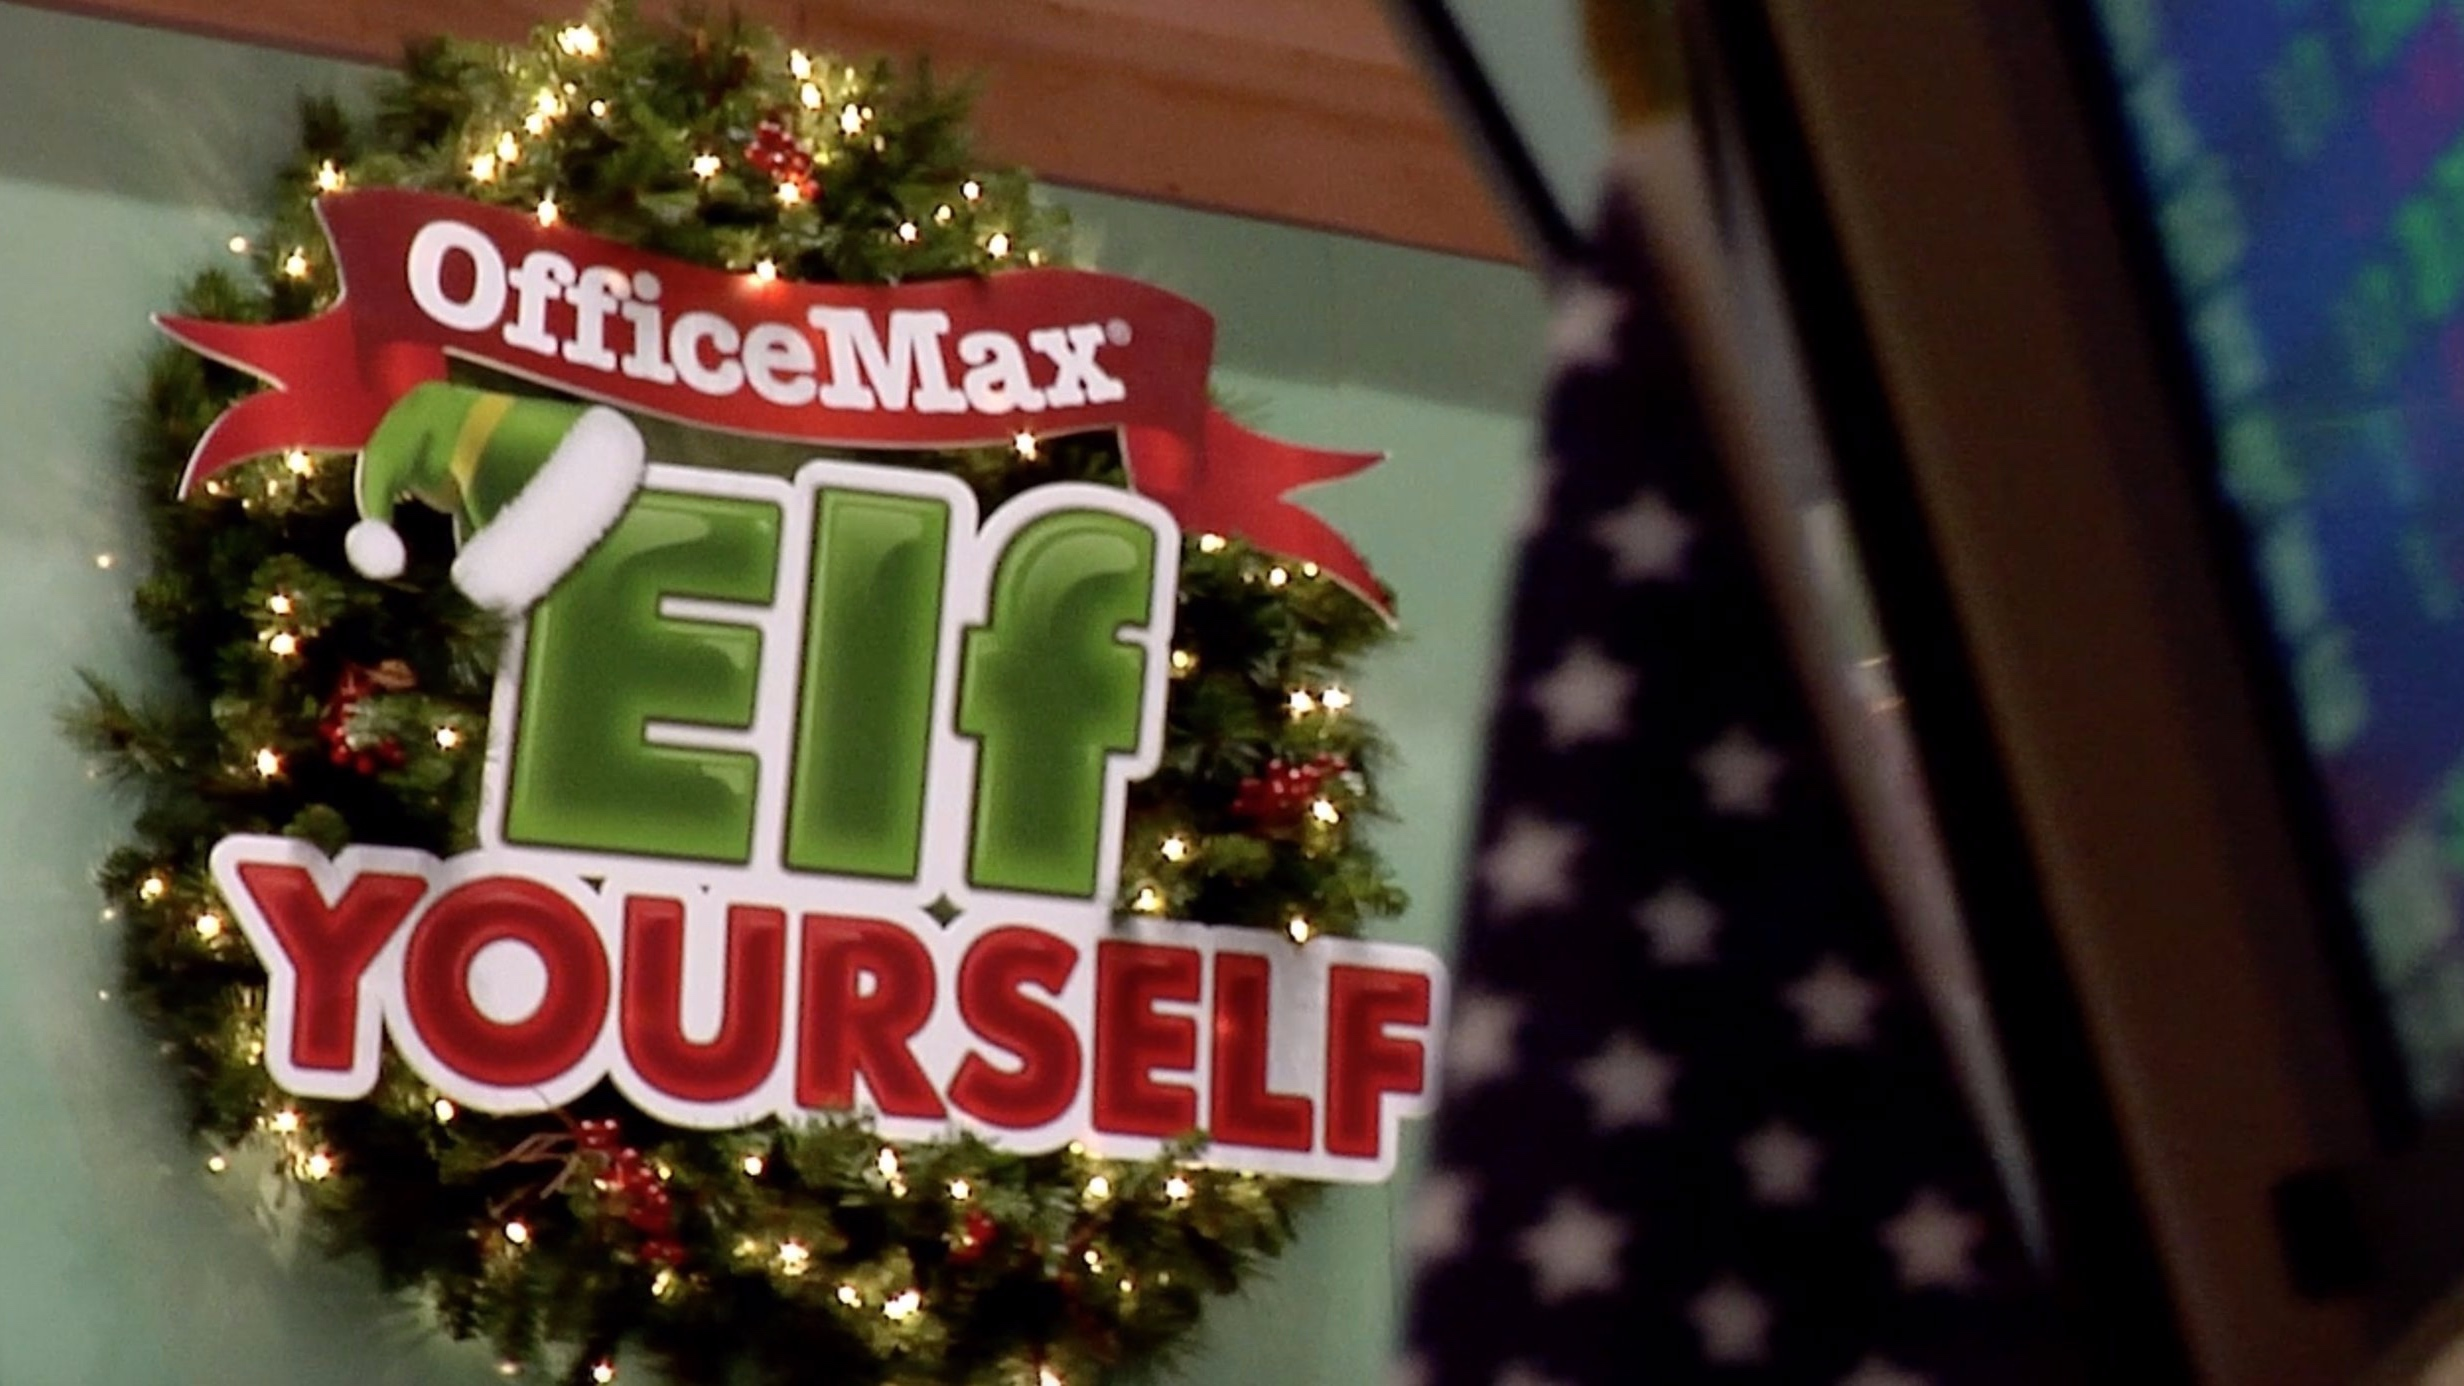 OFFICE MAX: ELF YOURSELF NYSE - ONLINE COMMERICAL